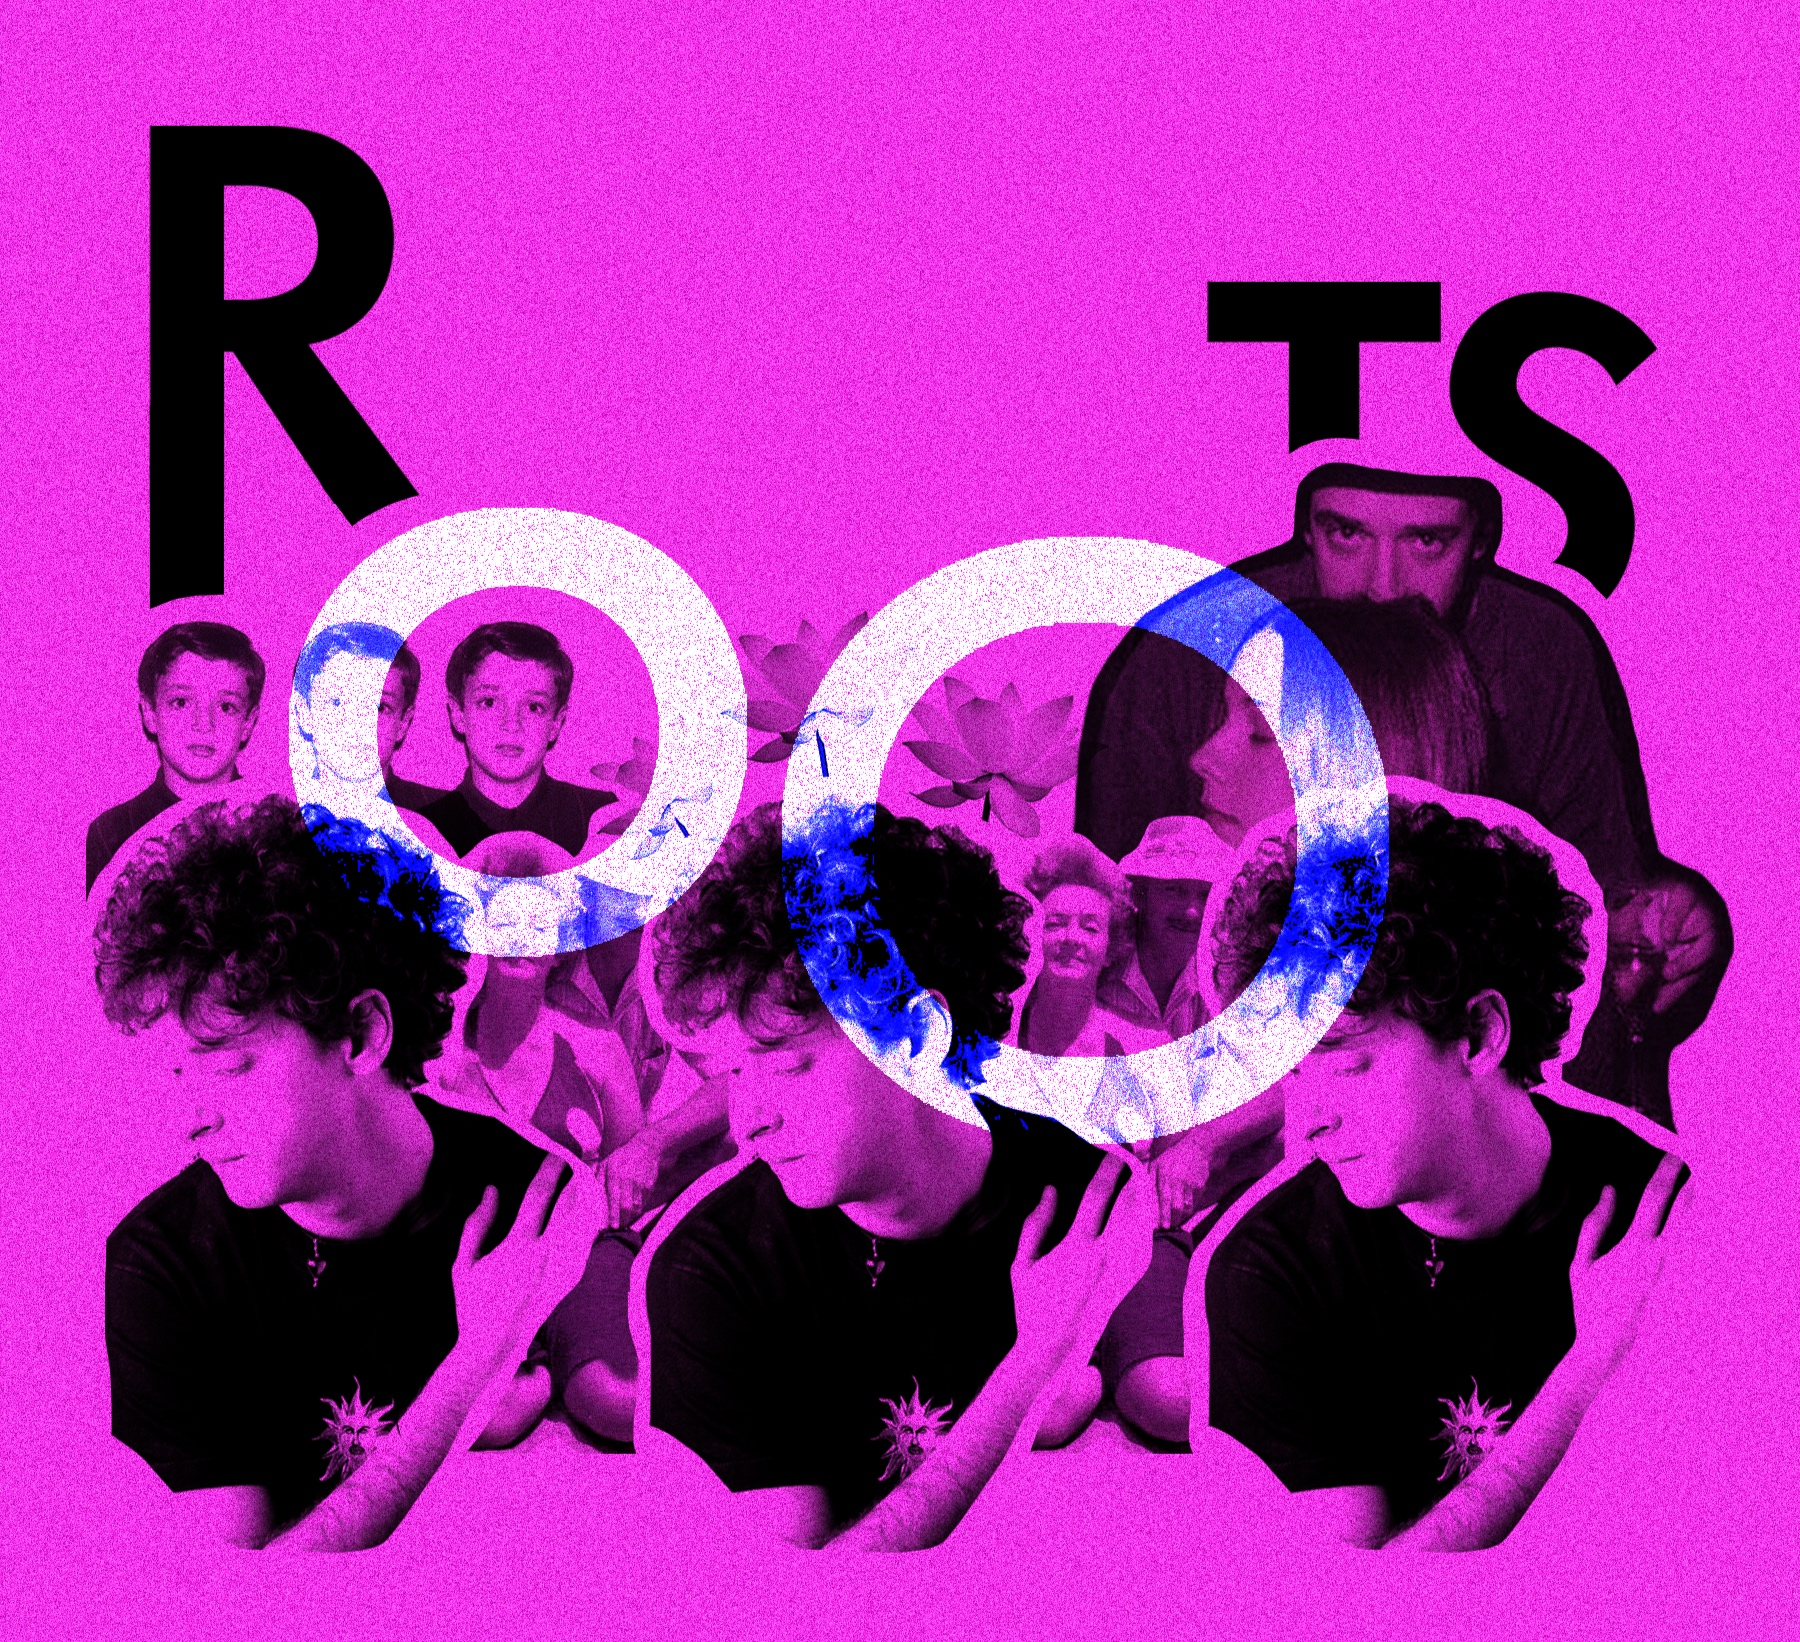 roots_cover2.jpg